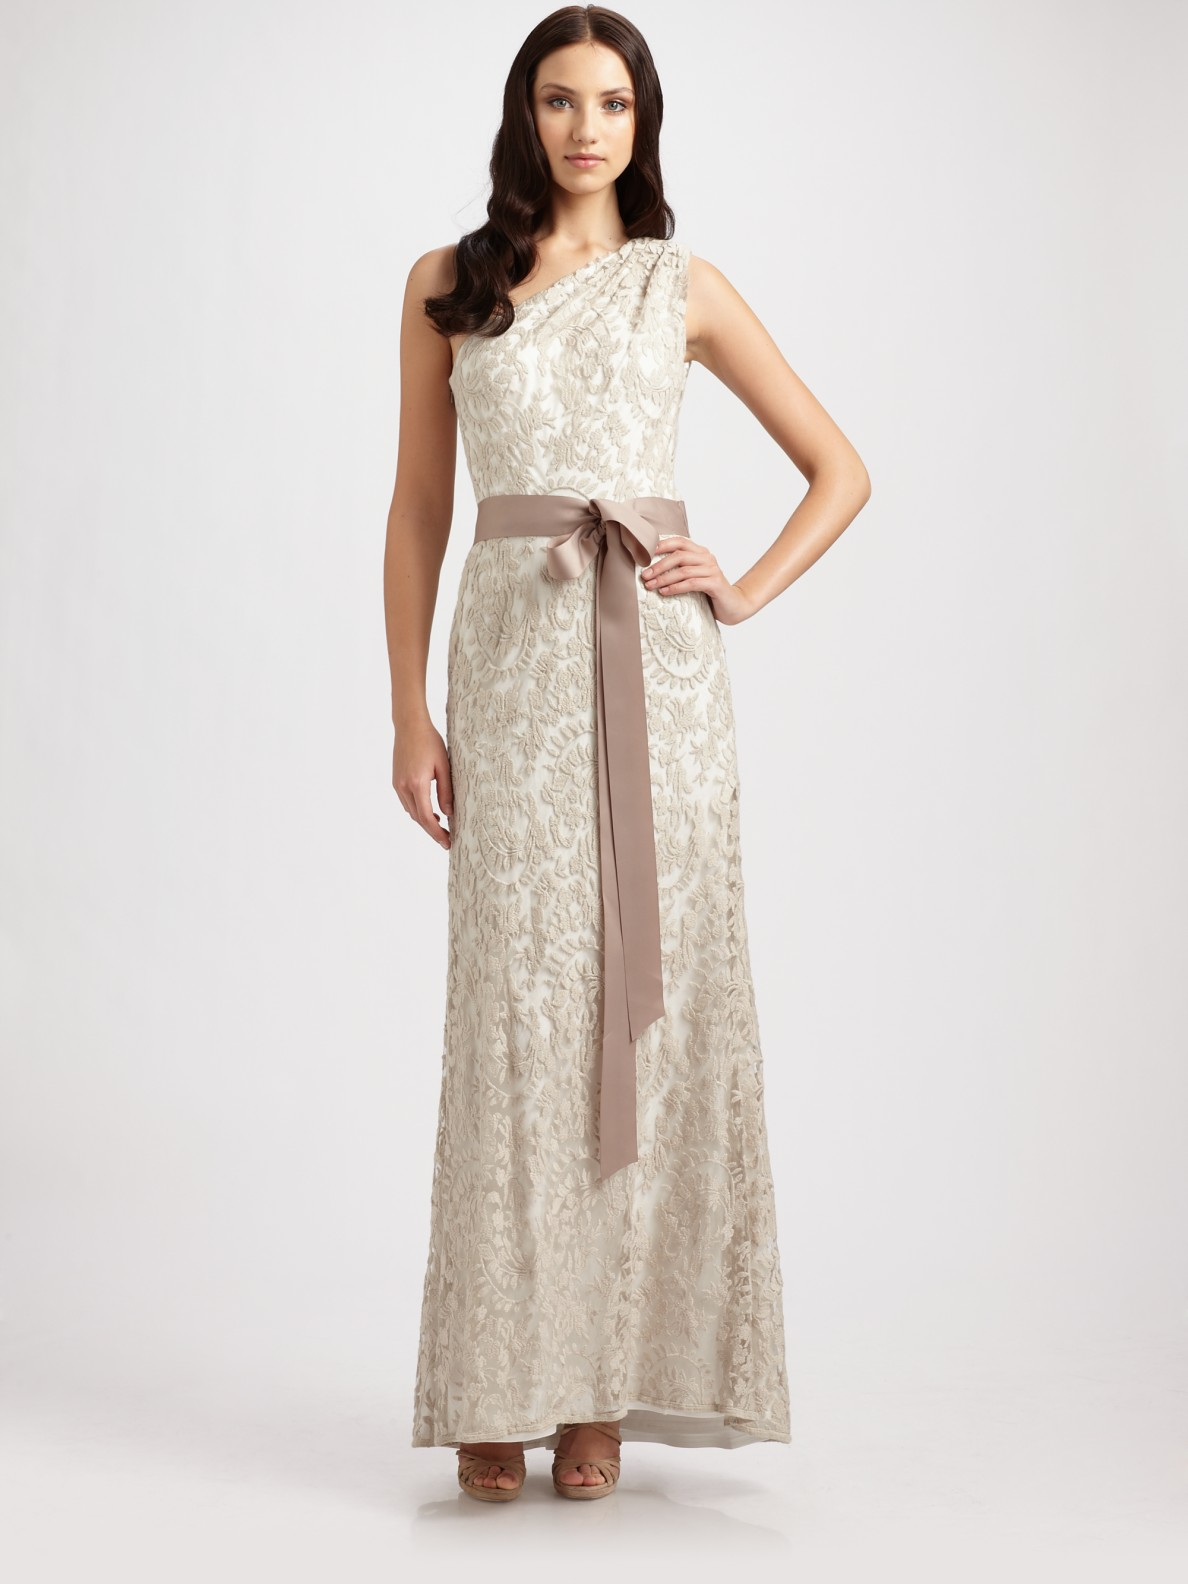 Lyst - Tadashi Shoji One Shoulder Embroidered Lace Gown in Natural